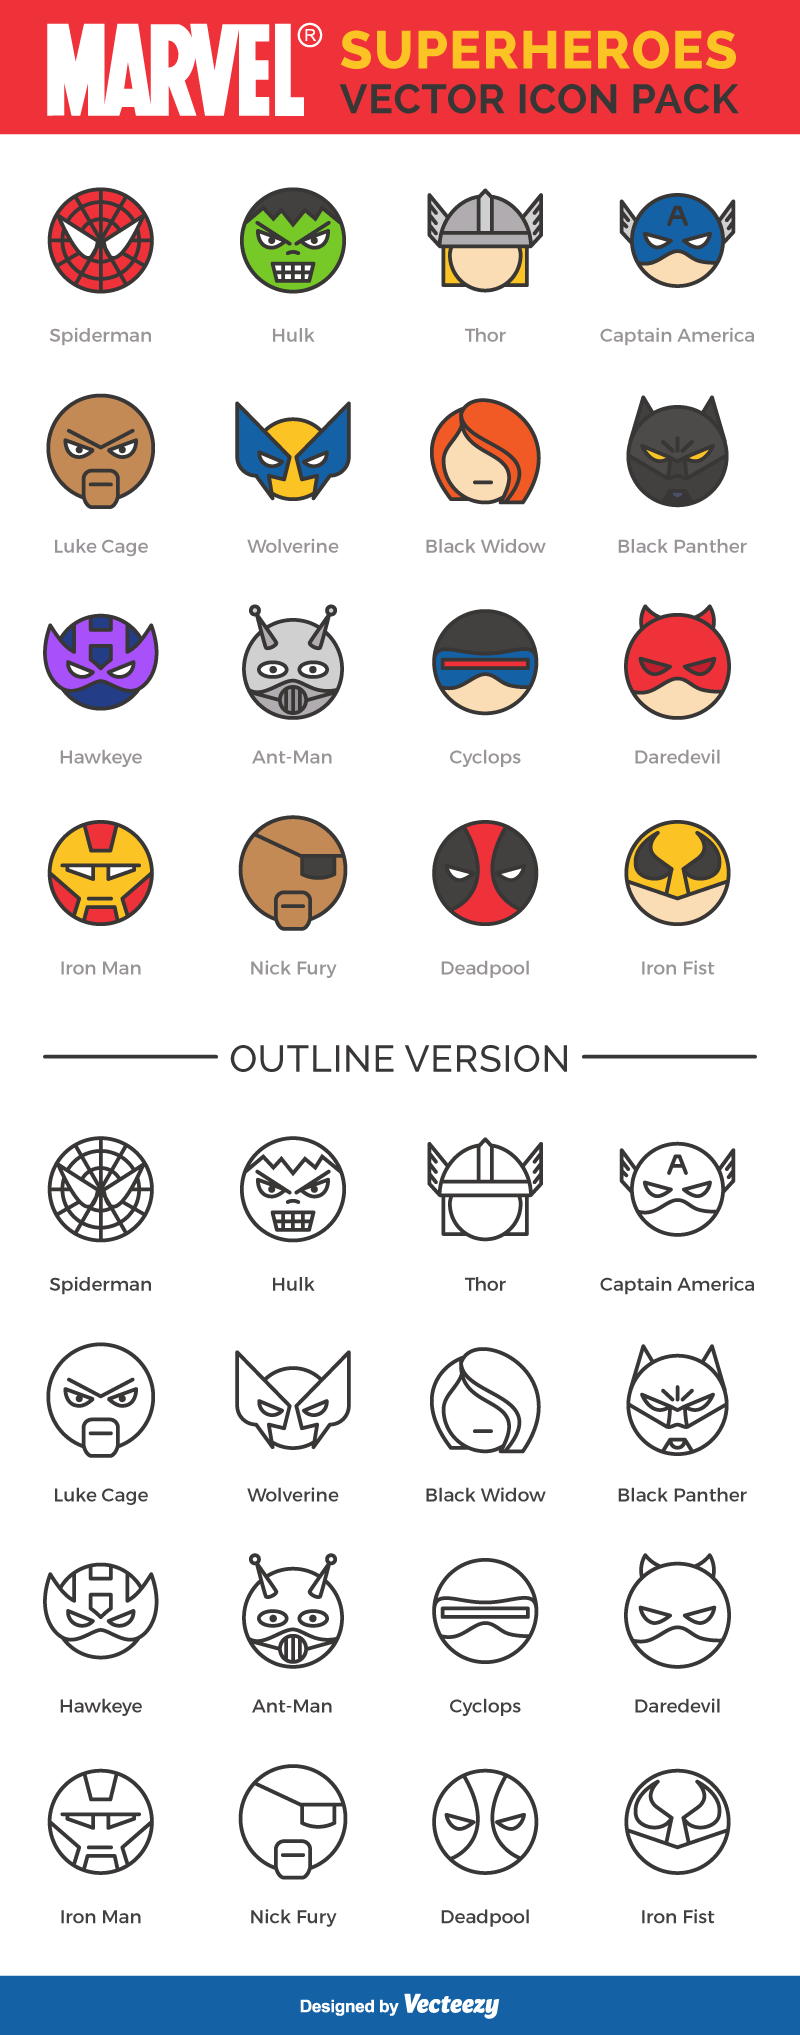 marvel-superheroes-vector-icon-pack-preview